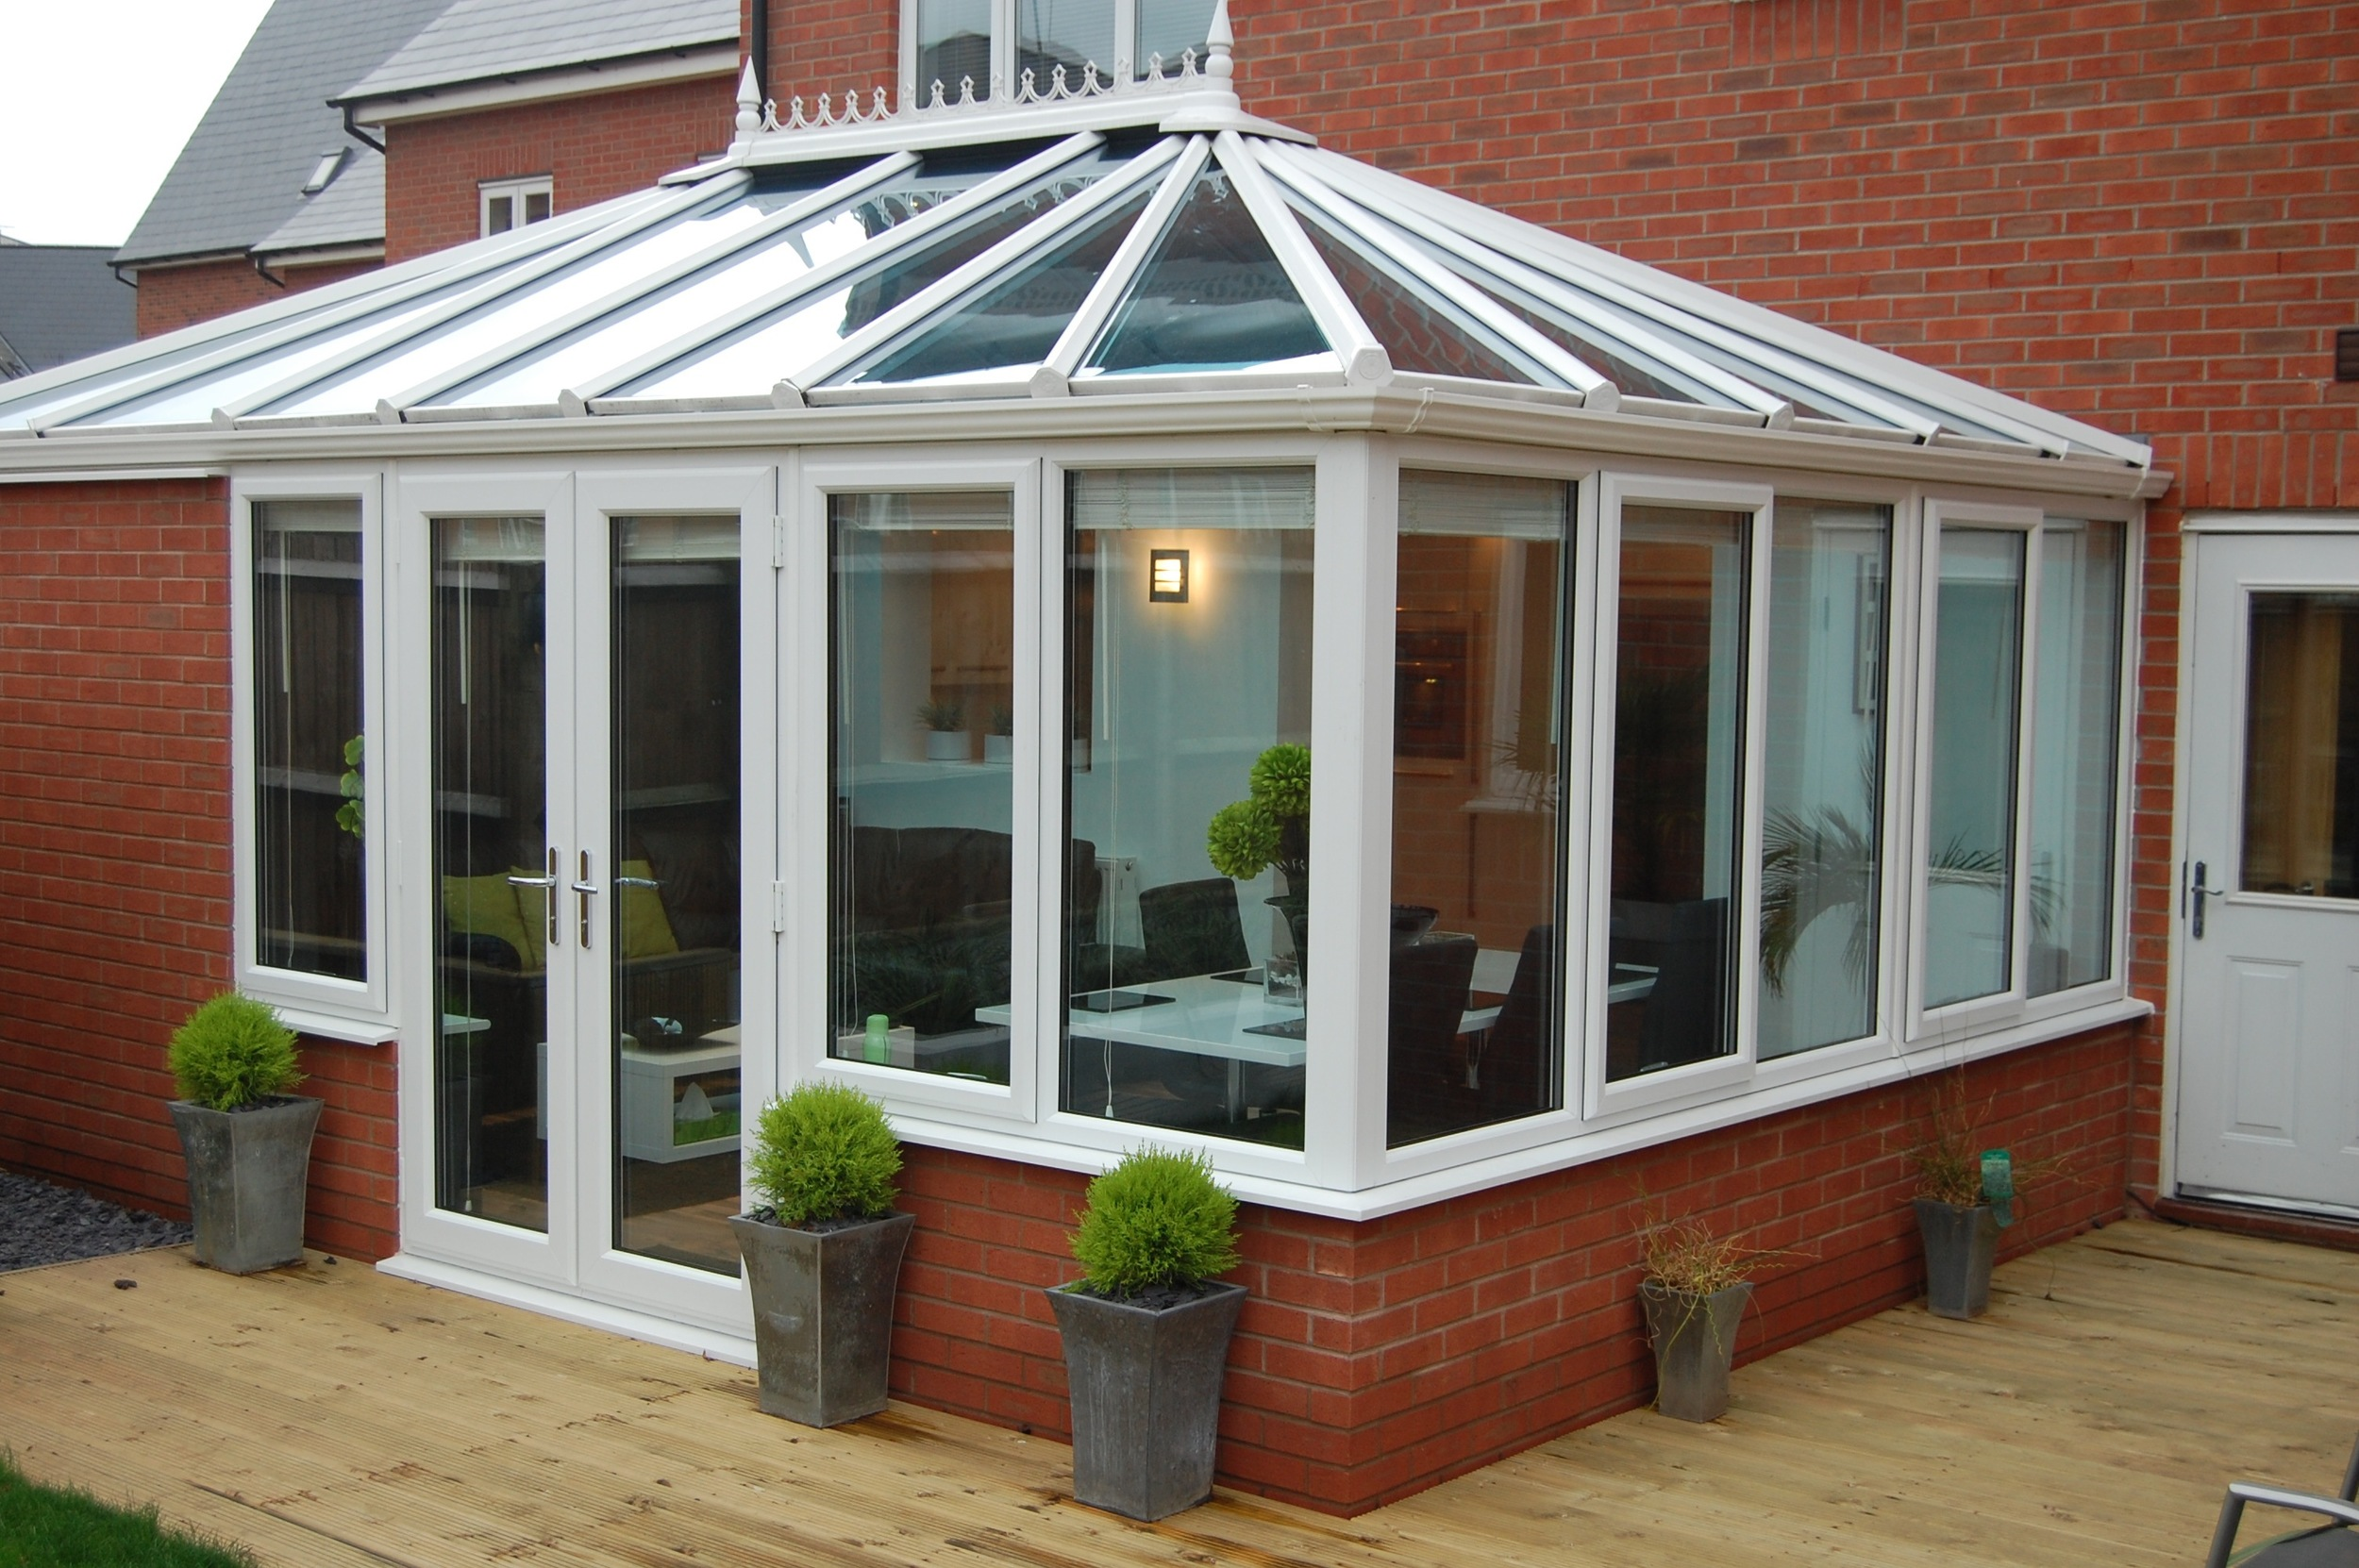 Conservatory cleaning   REQUEST A QUOTATION